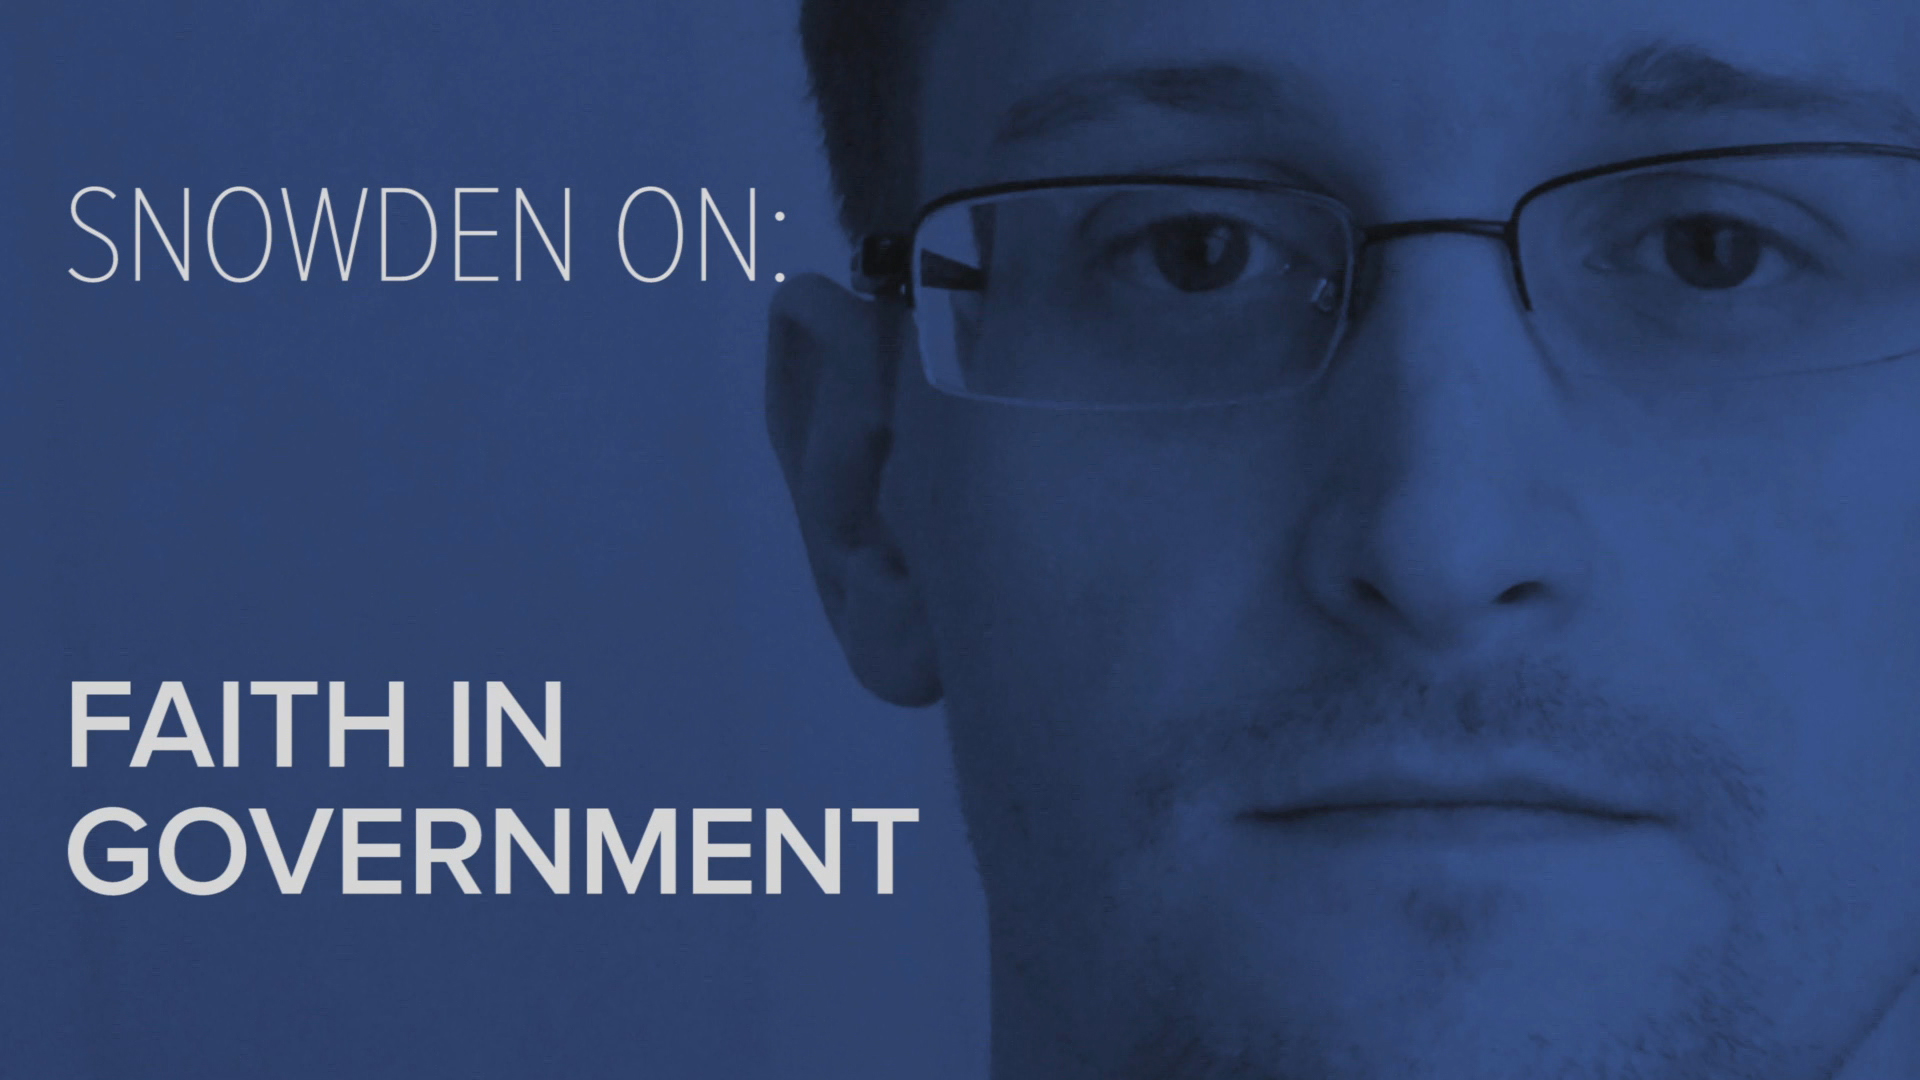 snowden on faith in government nbc news